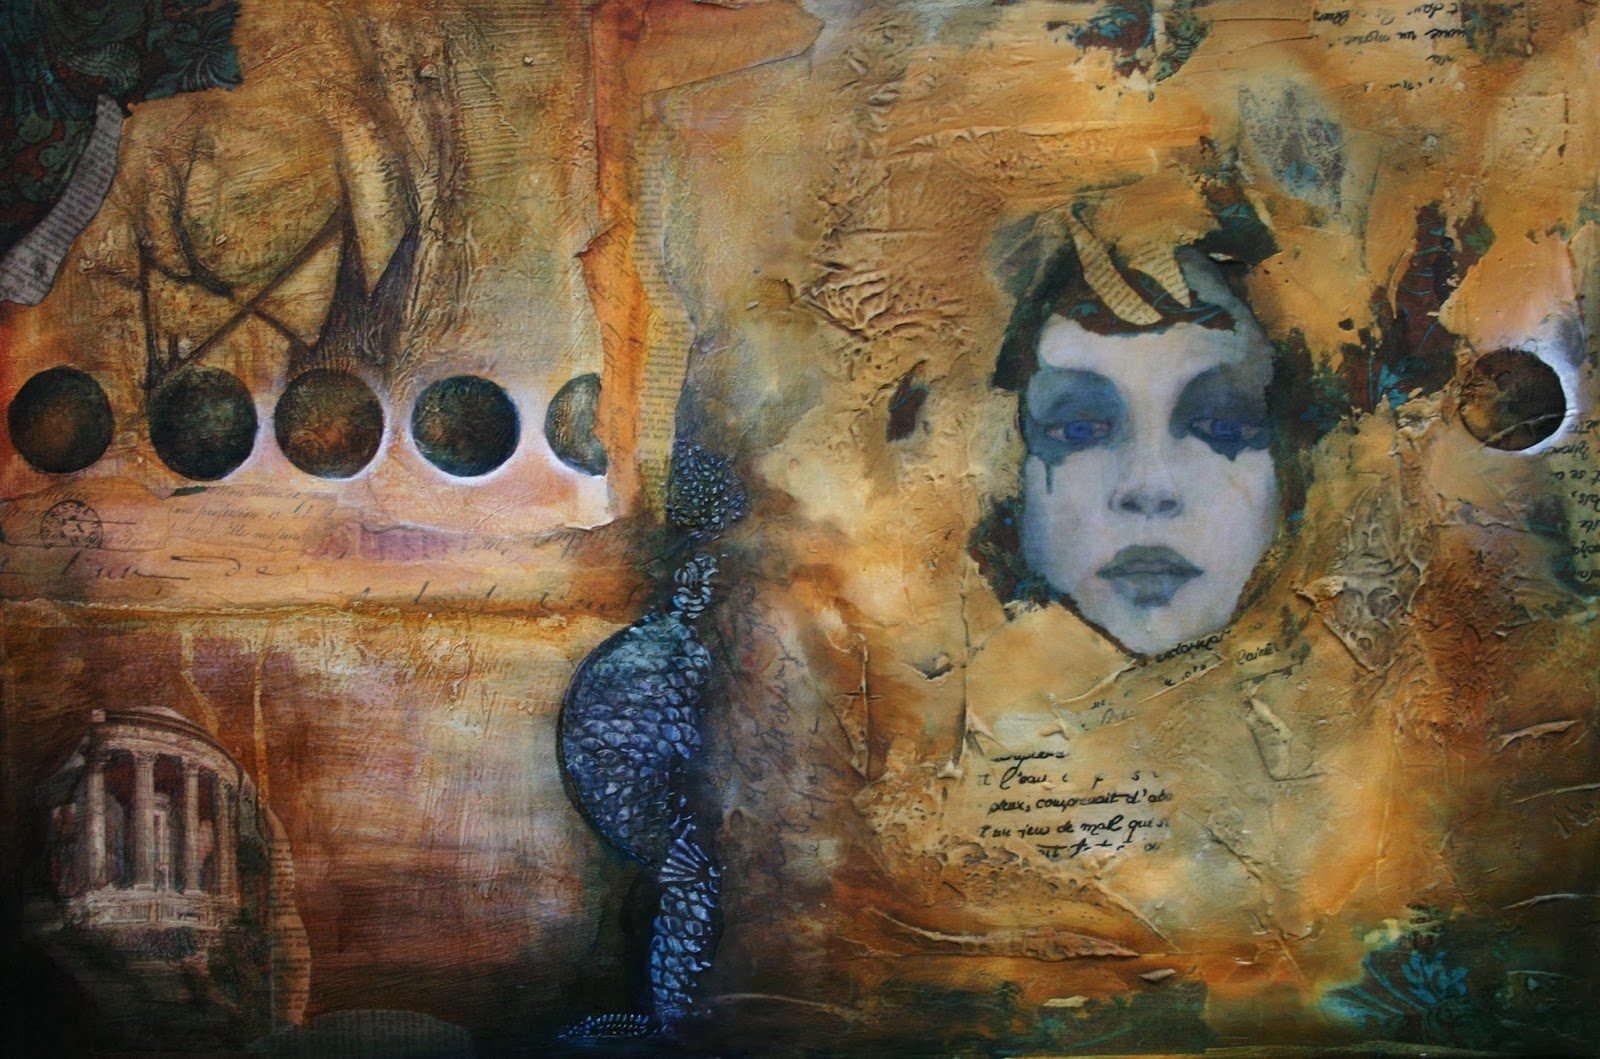 rustymermaid digital art and photography face book and the alchemist first my latest mixed media piece called the alchemist 24x36 canvas venetian plaster book pages acrylic paint and inks and charcoal secondly i finally